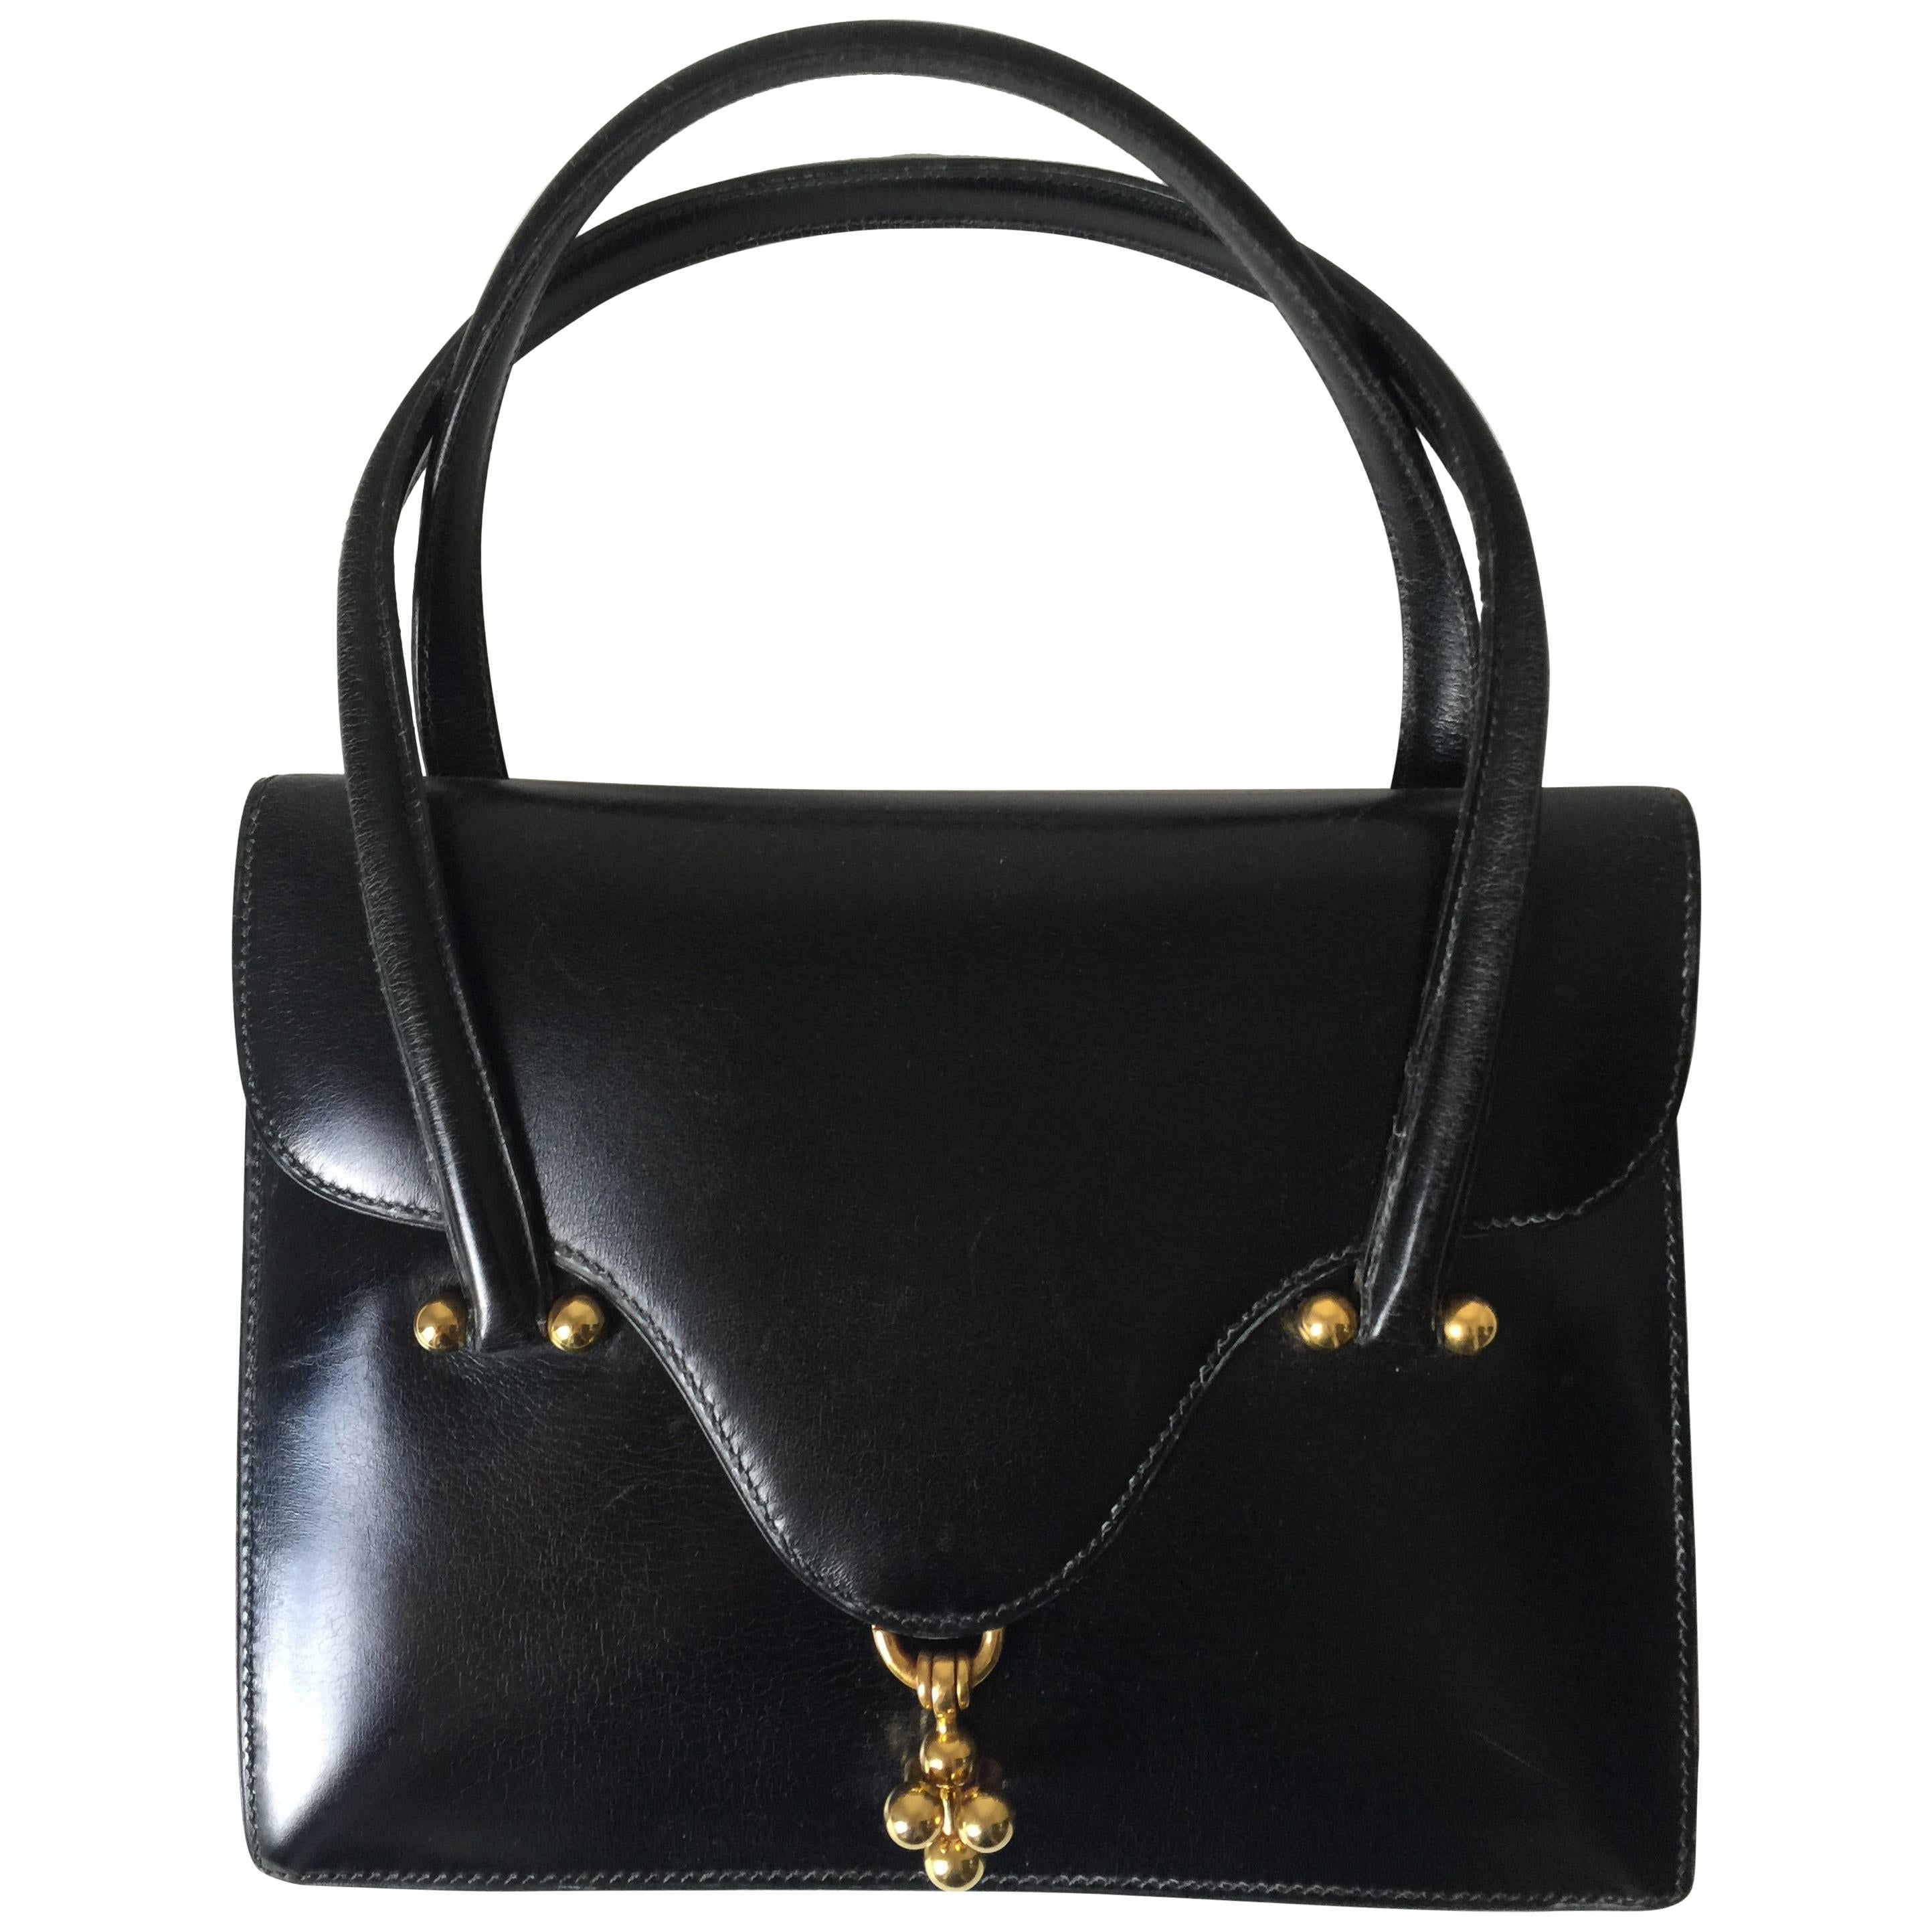 Hermes Leather Bags - 2097 For Sale on 1stdibs 56be963066675